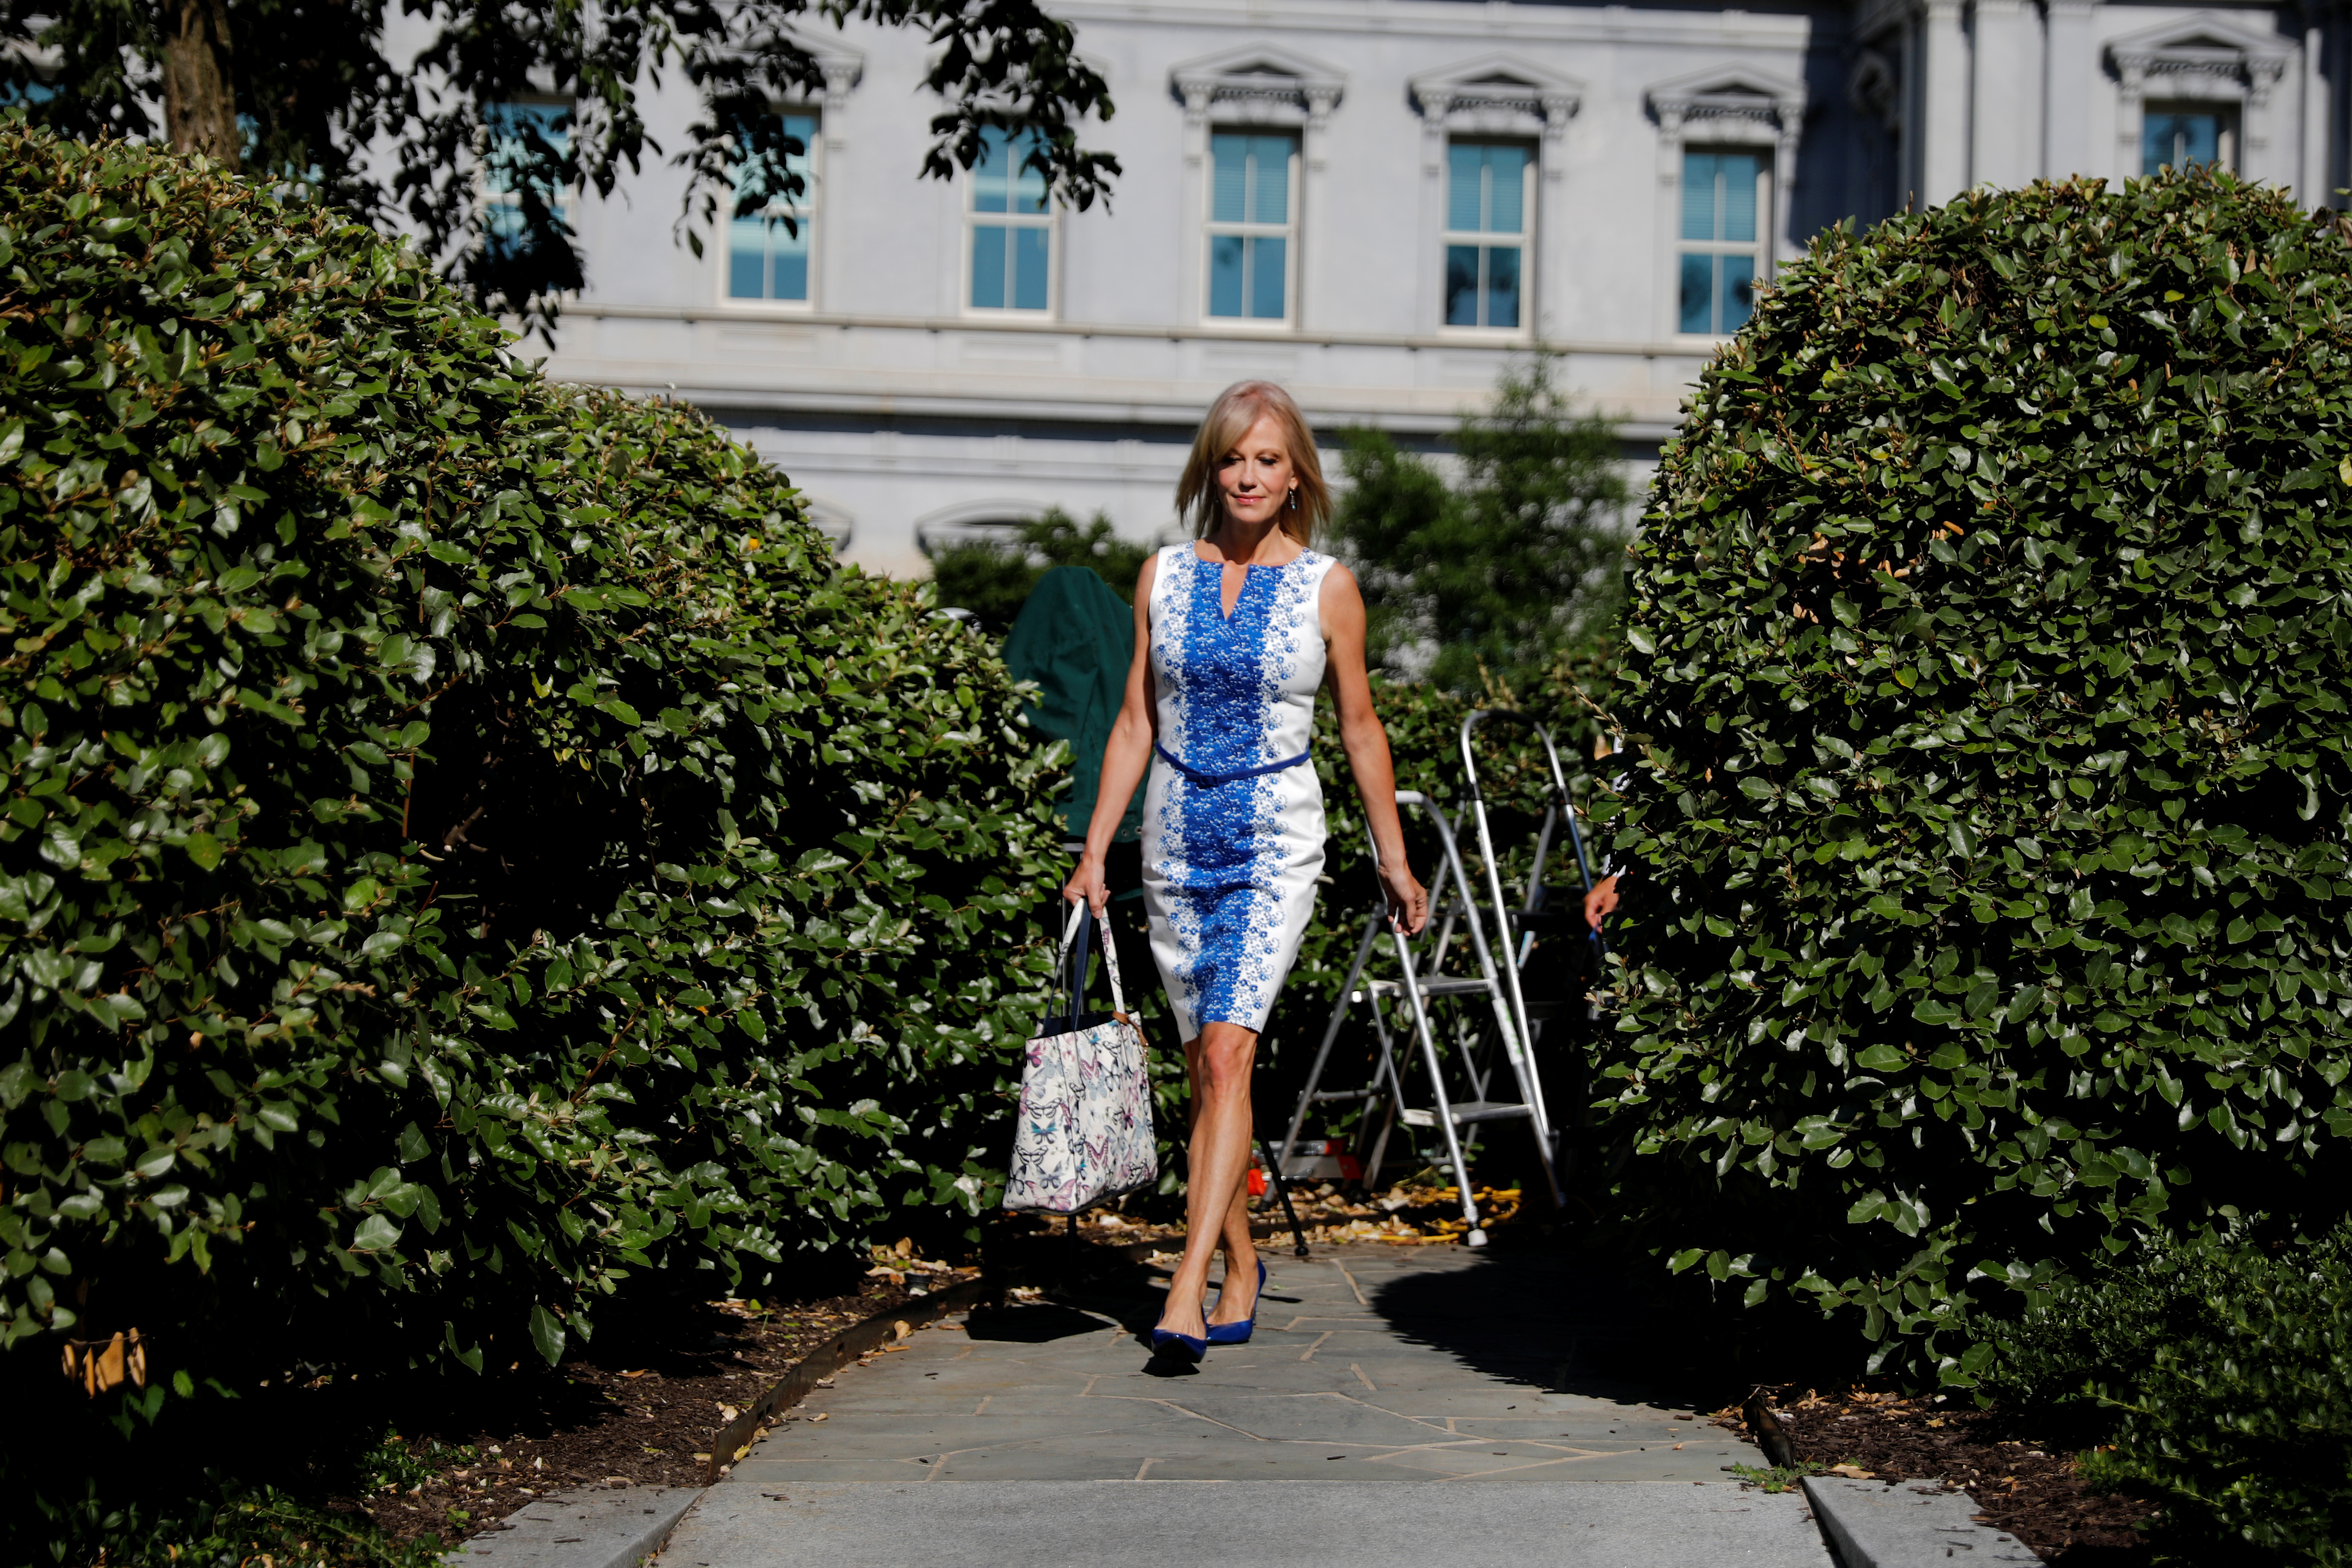 Trump aide Conway will not testify before Congress - White House